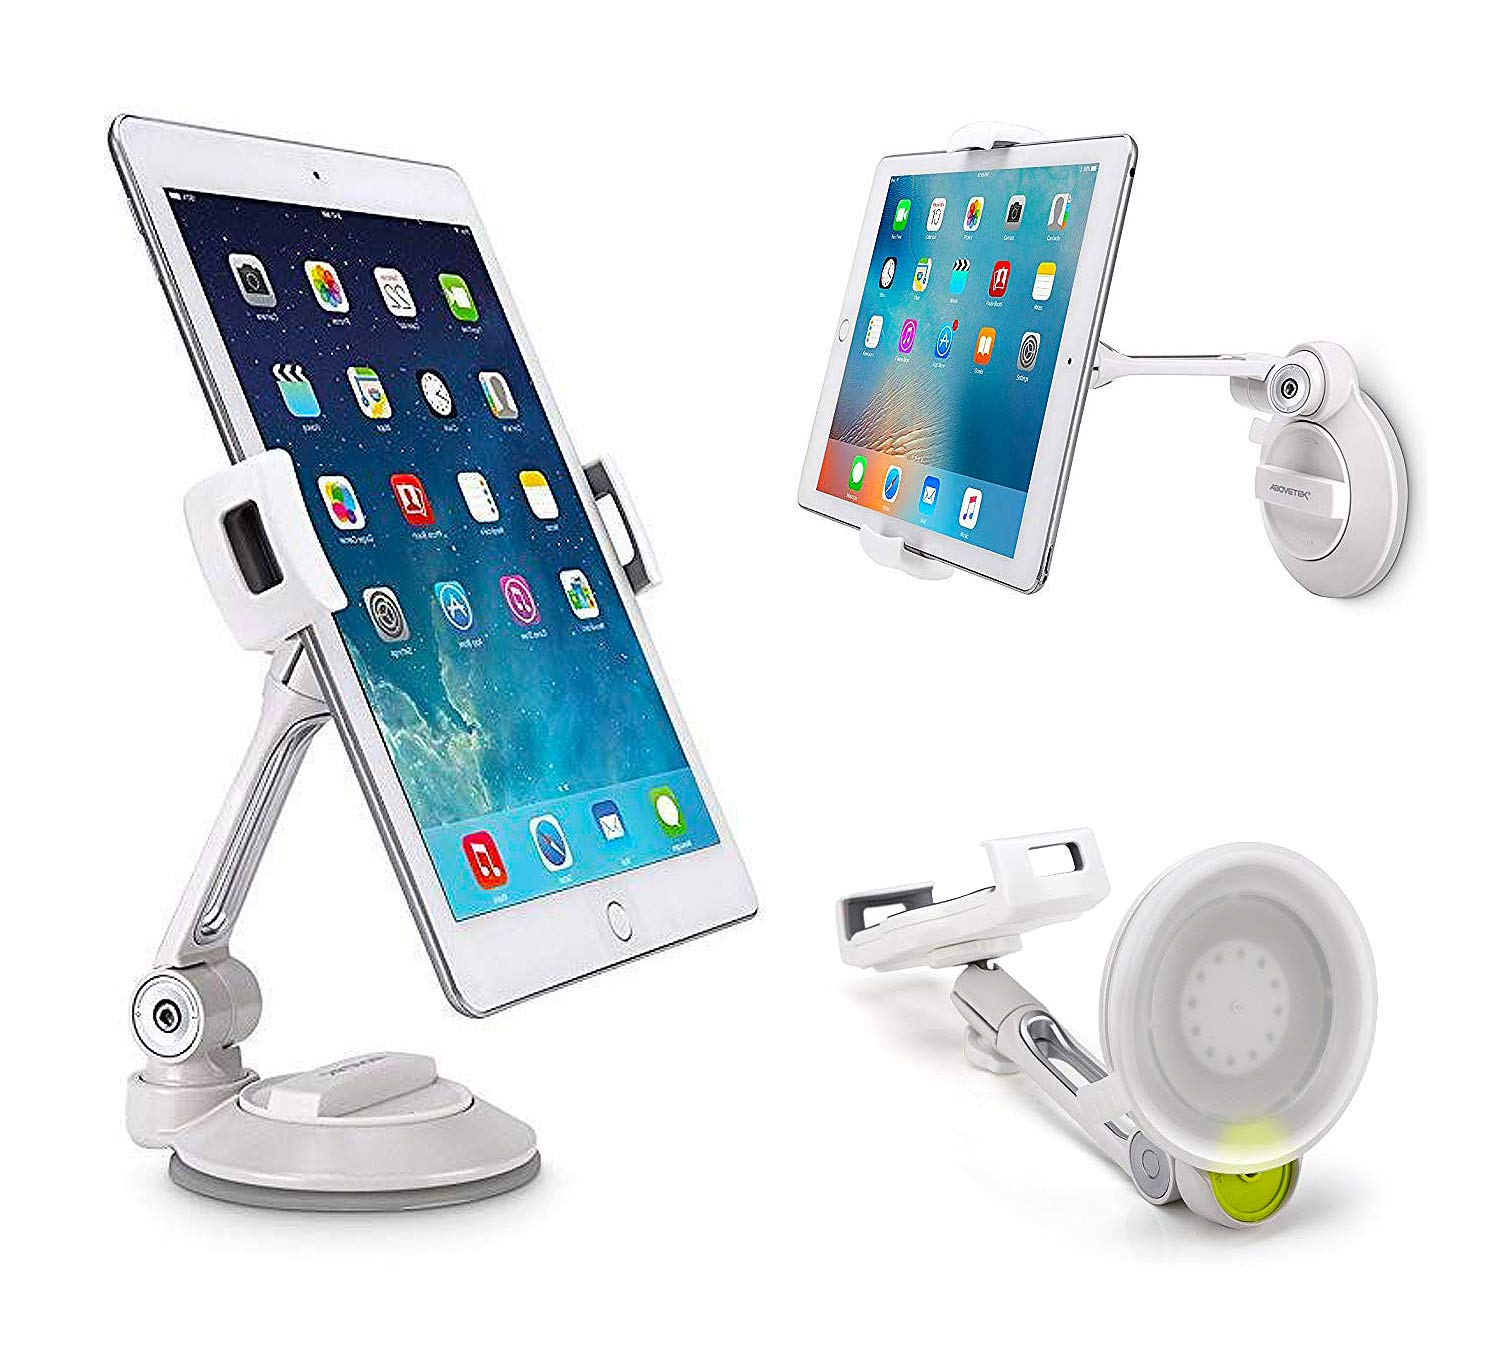 """Grip Tight iPad Suction Cup Holder Fits 4-11"""" Display, Swivel Sticky Tablet Phone Stand Pad to Mount Smartphone, iPhone 5 6 7 iPad Mini, Cell on Smooth Surface Desk Countertop Mirror Car Truck Window"""